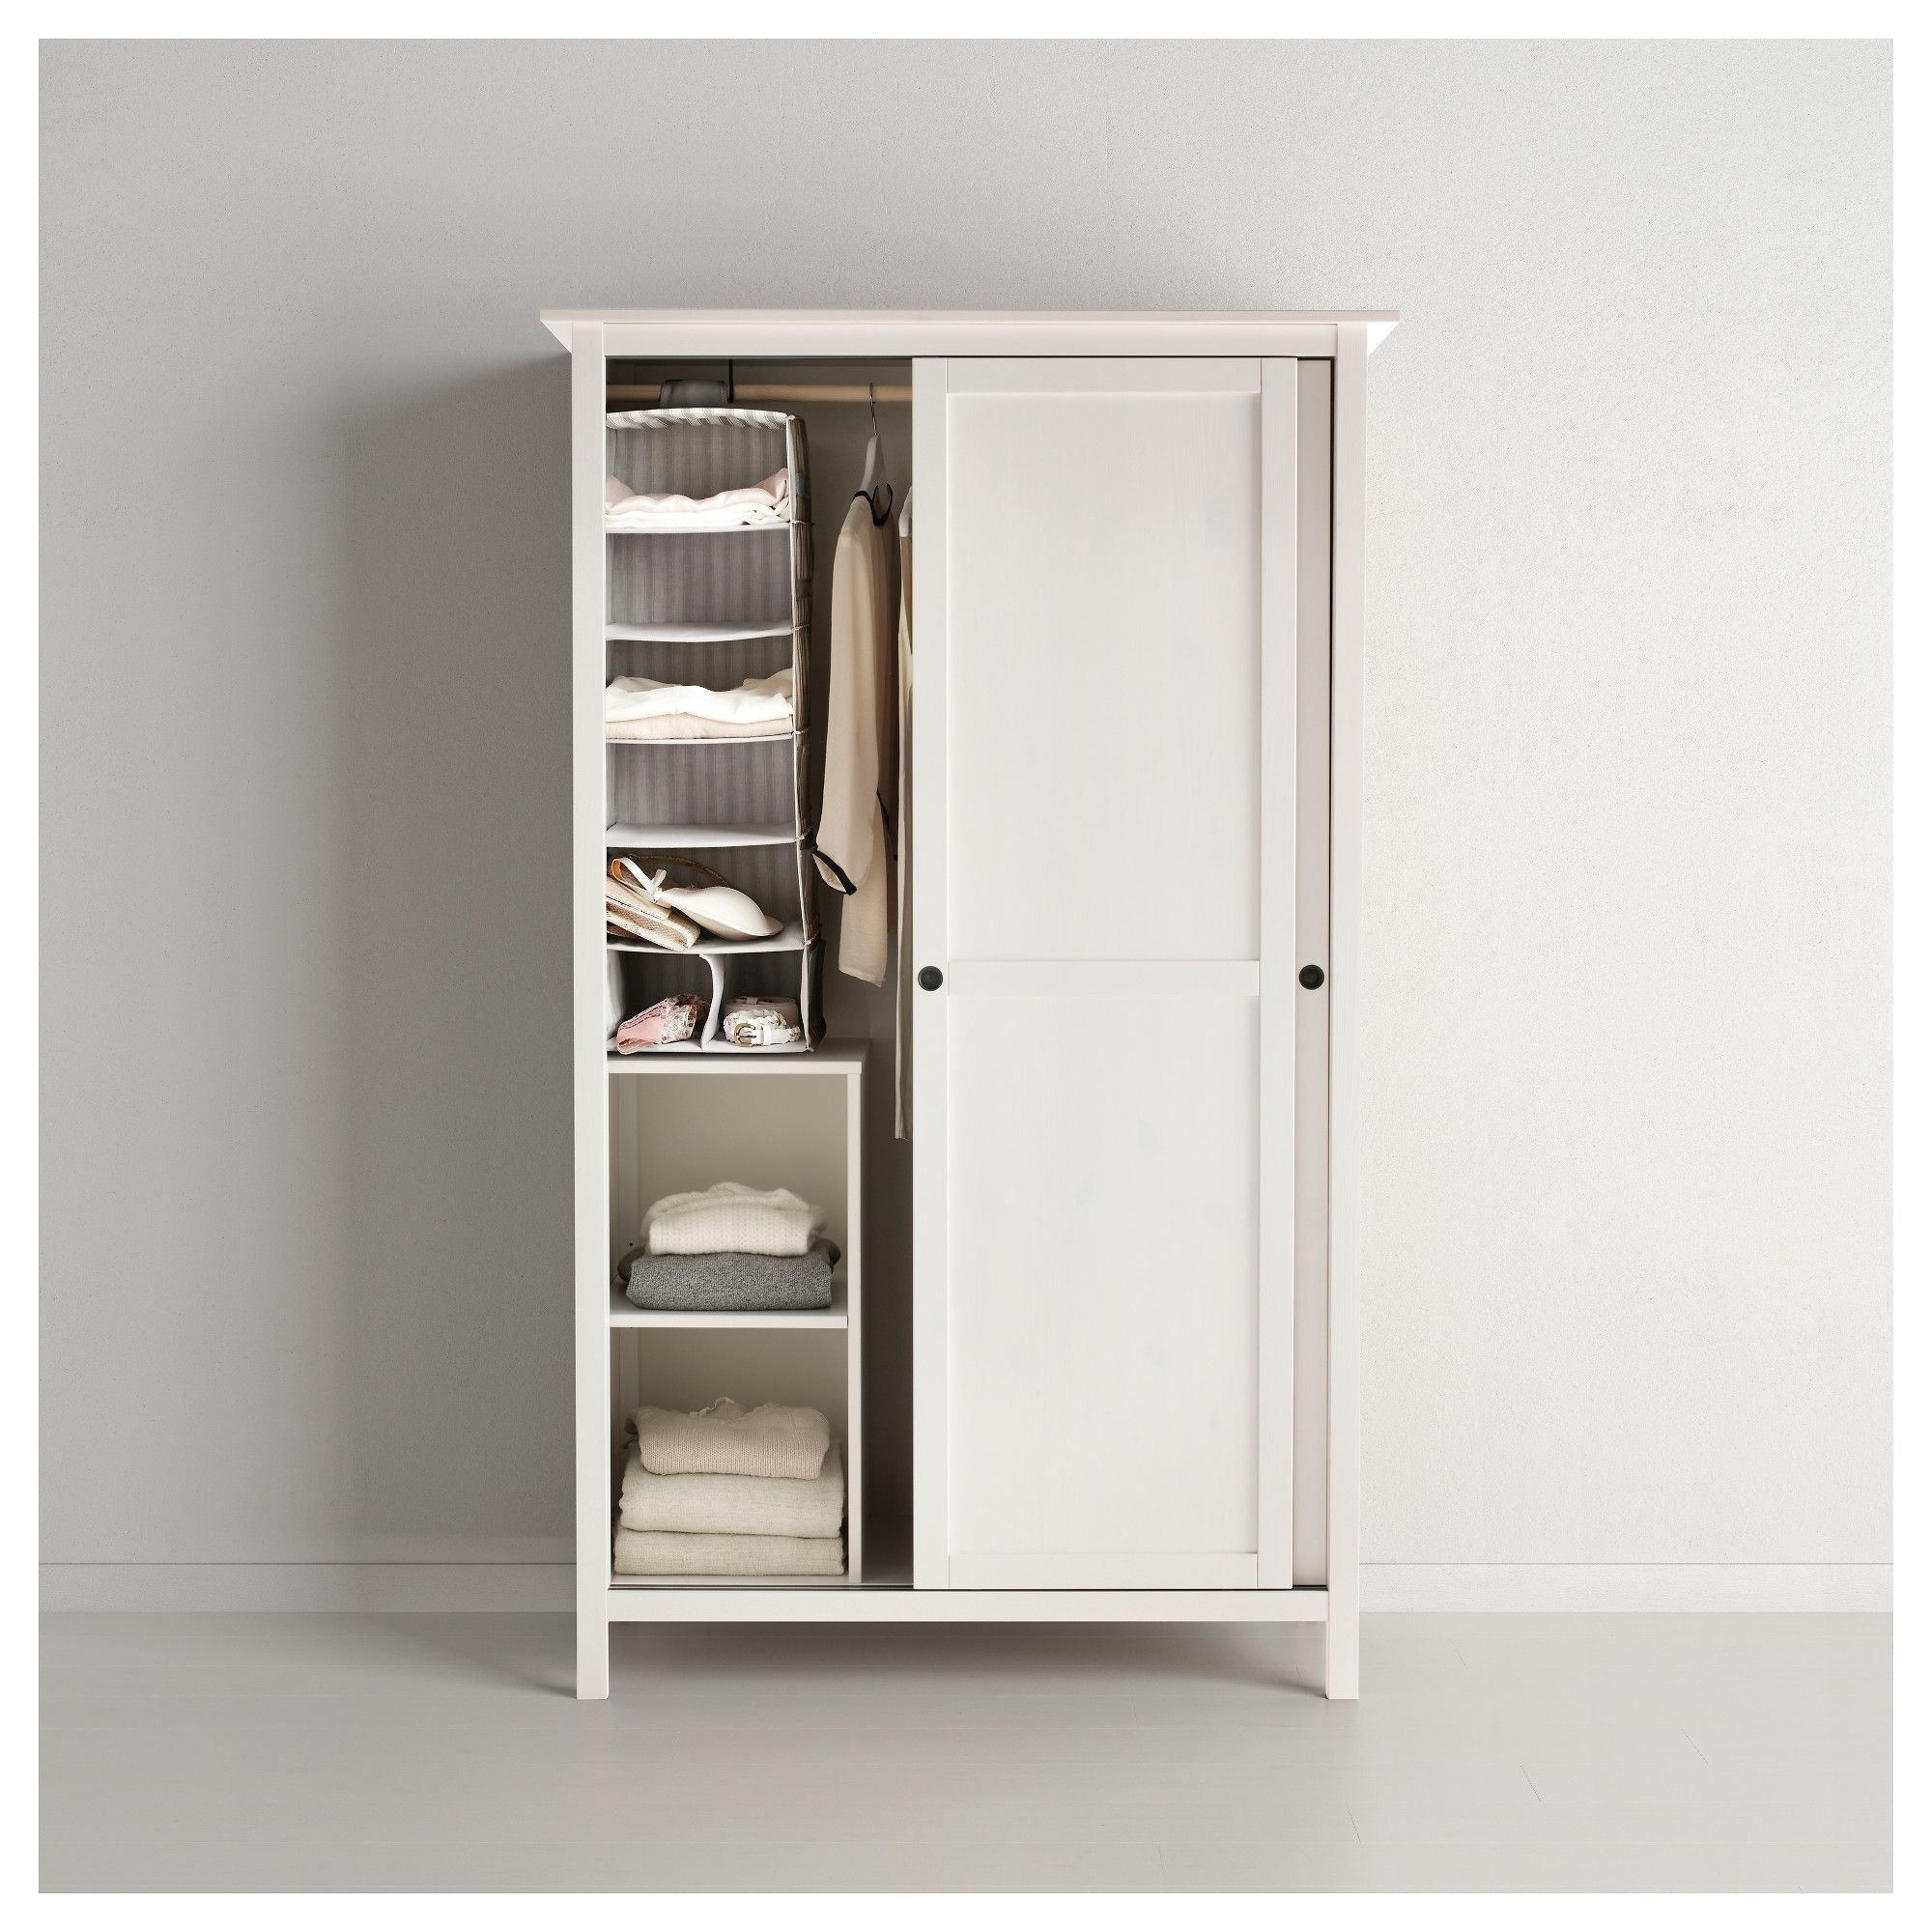 Widely Used 2 Door Wardrobes With Drawers And Shelves Pertaining To Hemnes Wardrobe With 2 Sliding Doors White Stain 120X197 Cm (View 15 of 15)